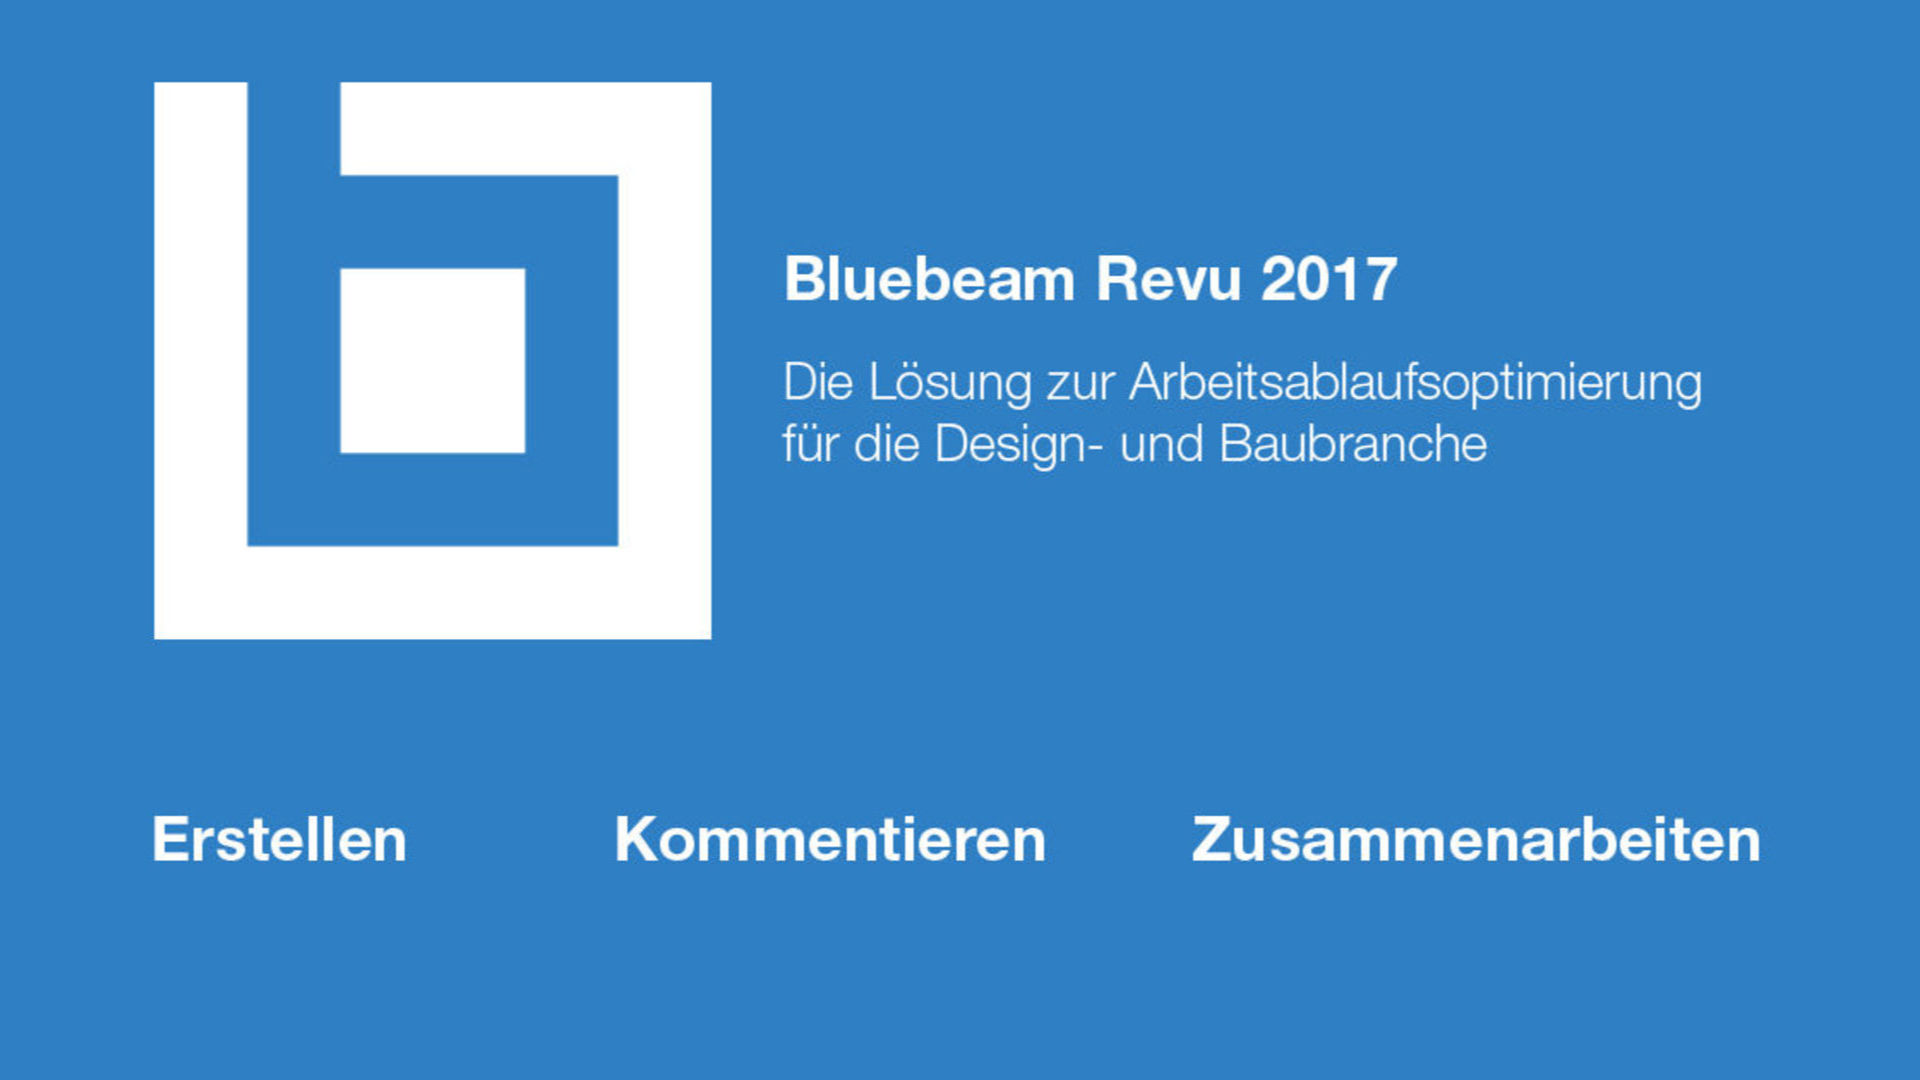 Update! Bluebeam Revu 2017